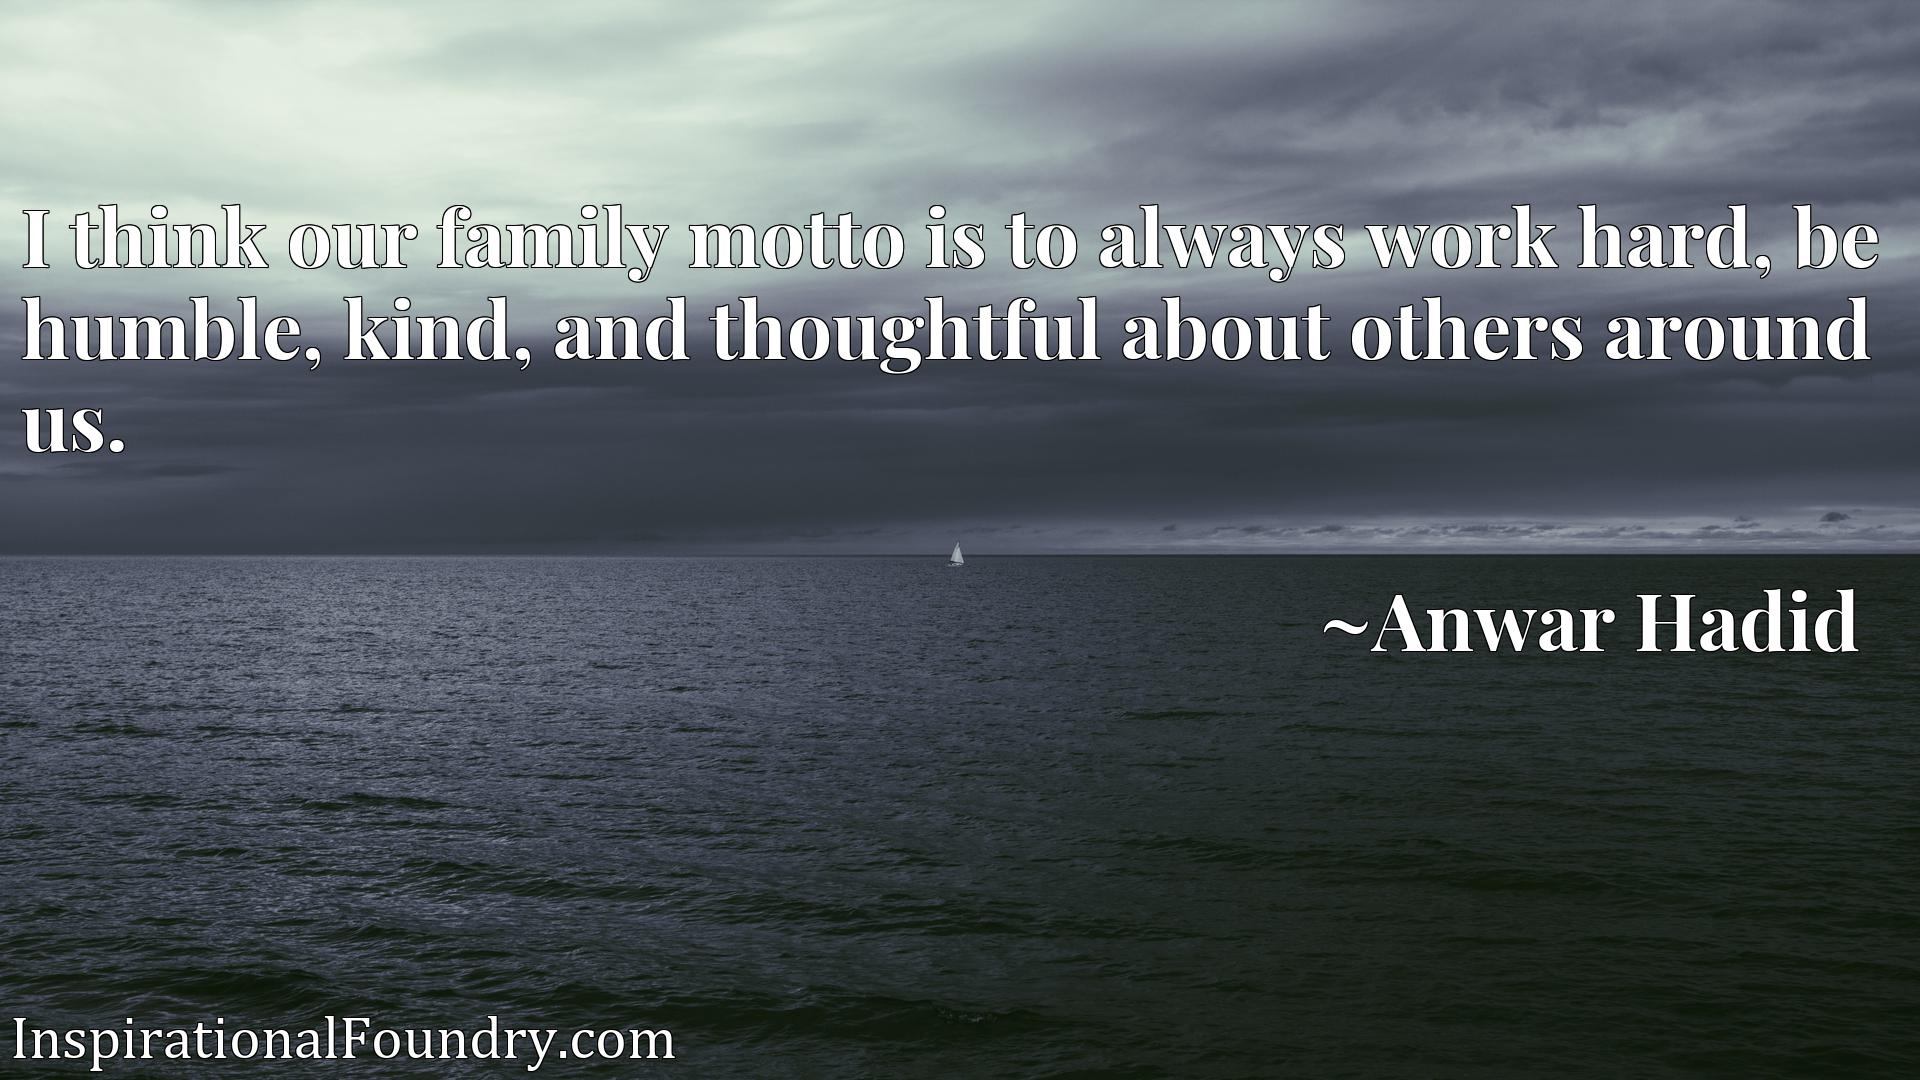 I think our family motto is to always work hard, be humble, kind, and thoughtful about others around us.